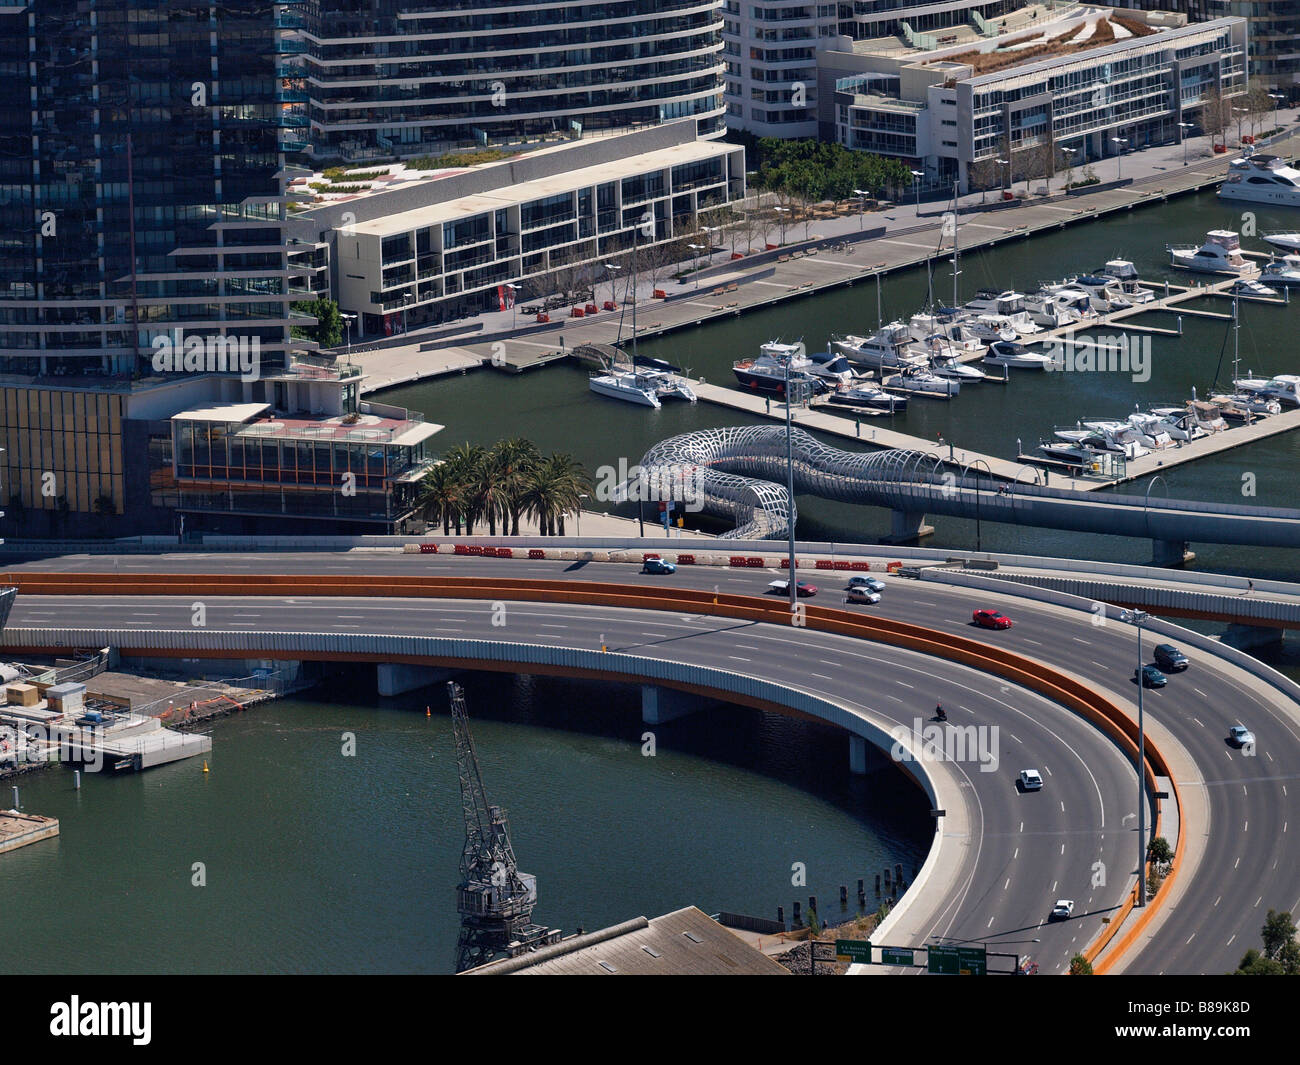 AERIEL VIEW OF DOCKLANDS , MONTAQUE STREET FROM RIALTO TOWERS MELBOURNE VICTORIA AUSTRALIA - Stock Image